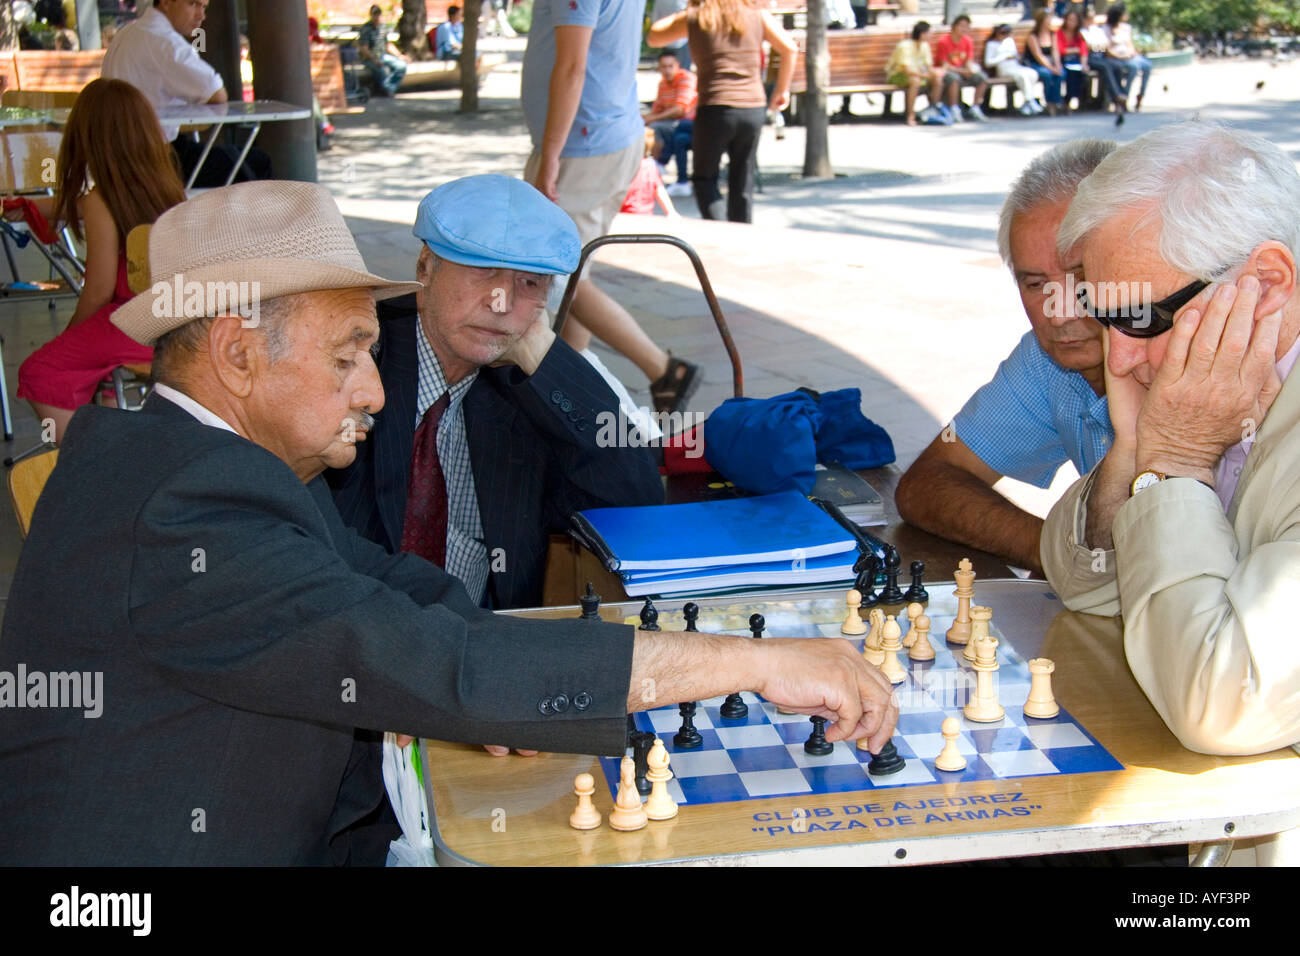 Chilean men play chess in the Plaza de Armas in Santiago Chile - Stock Image